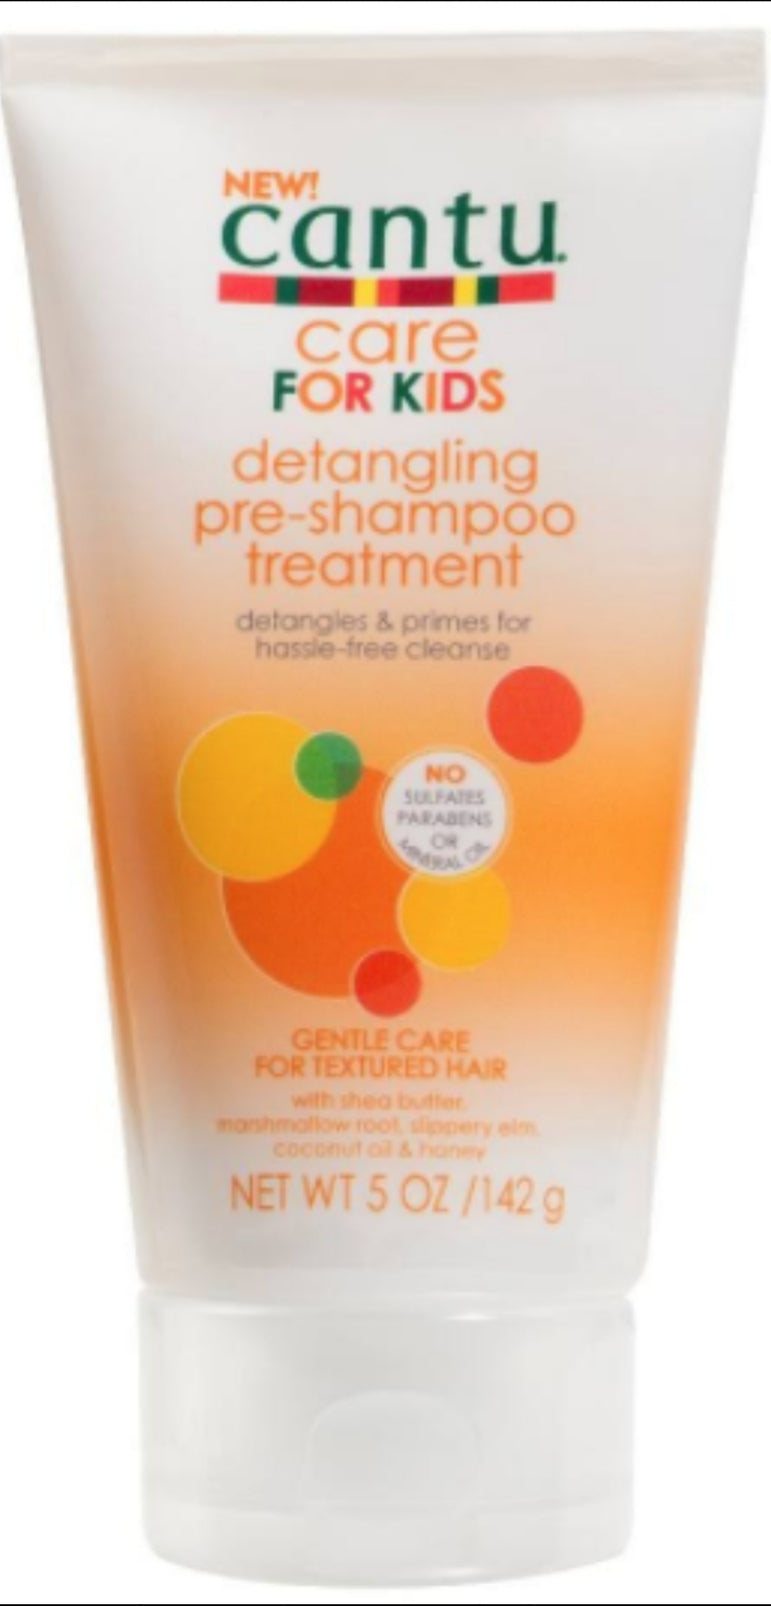 Cantu Care Detangling Pre-Shampoo Treatment 5 fl oz